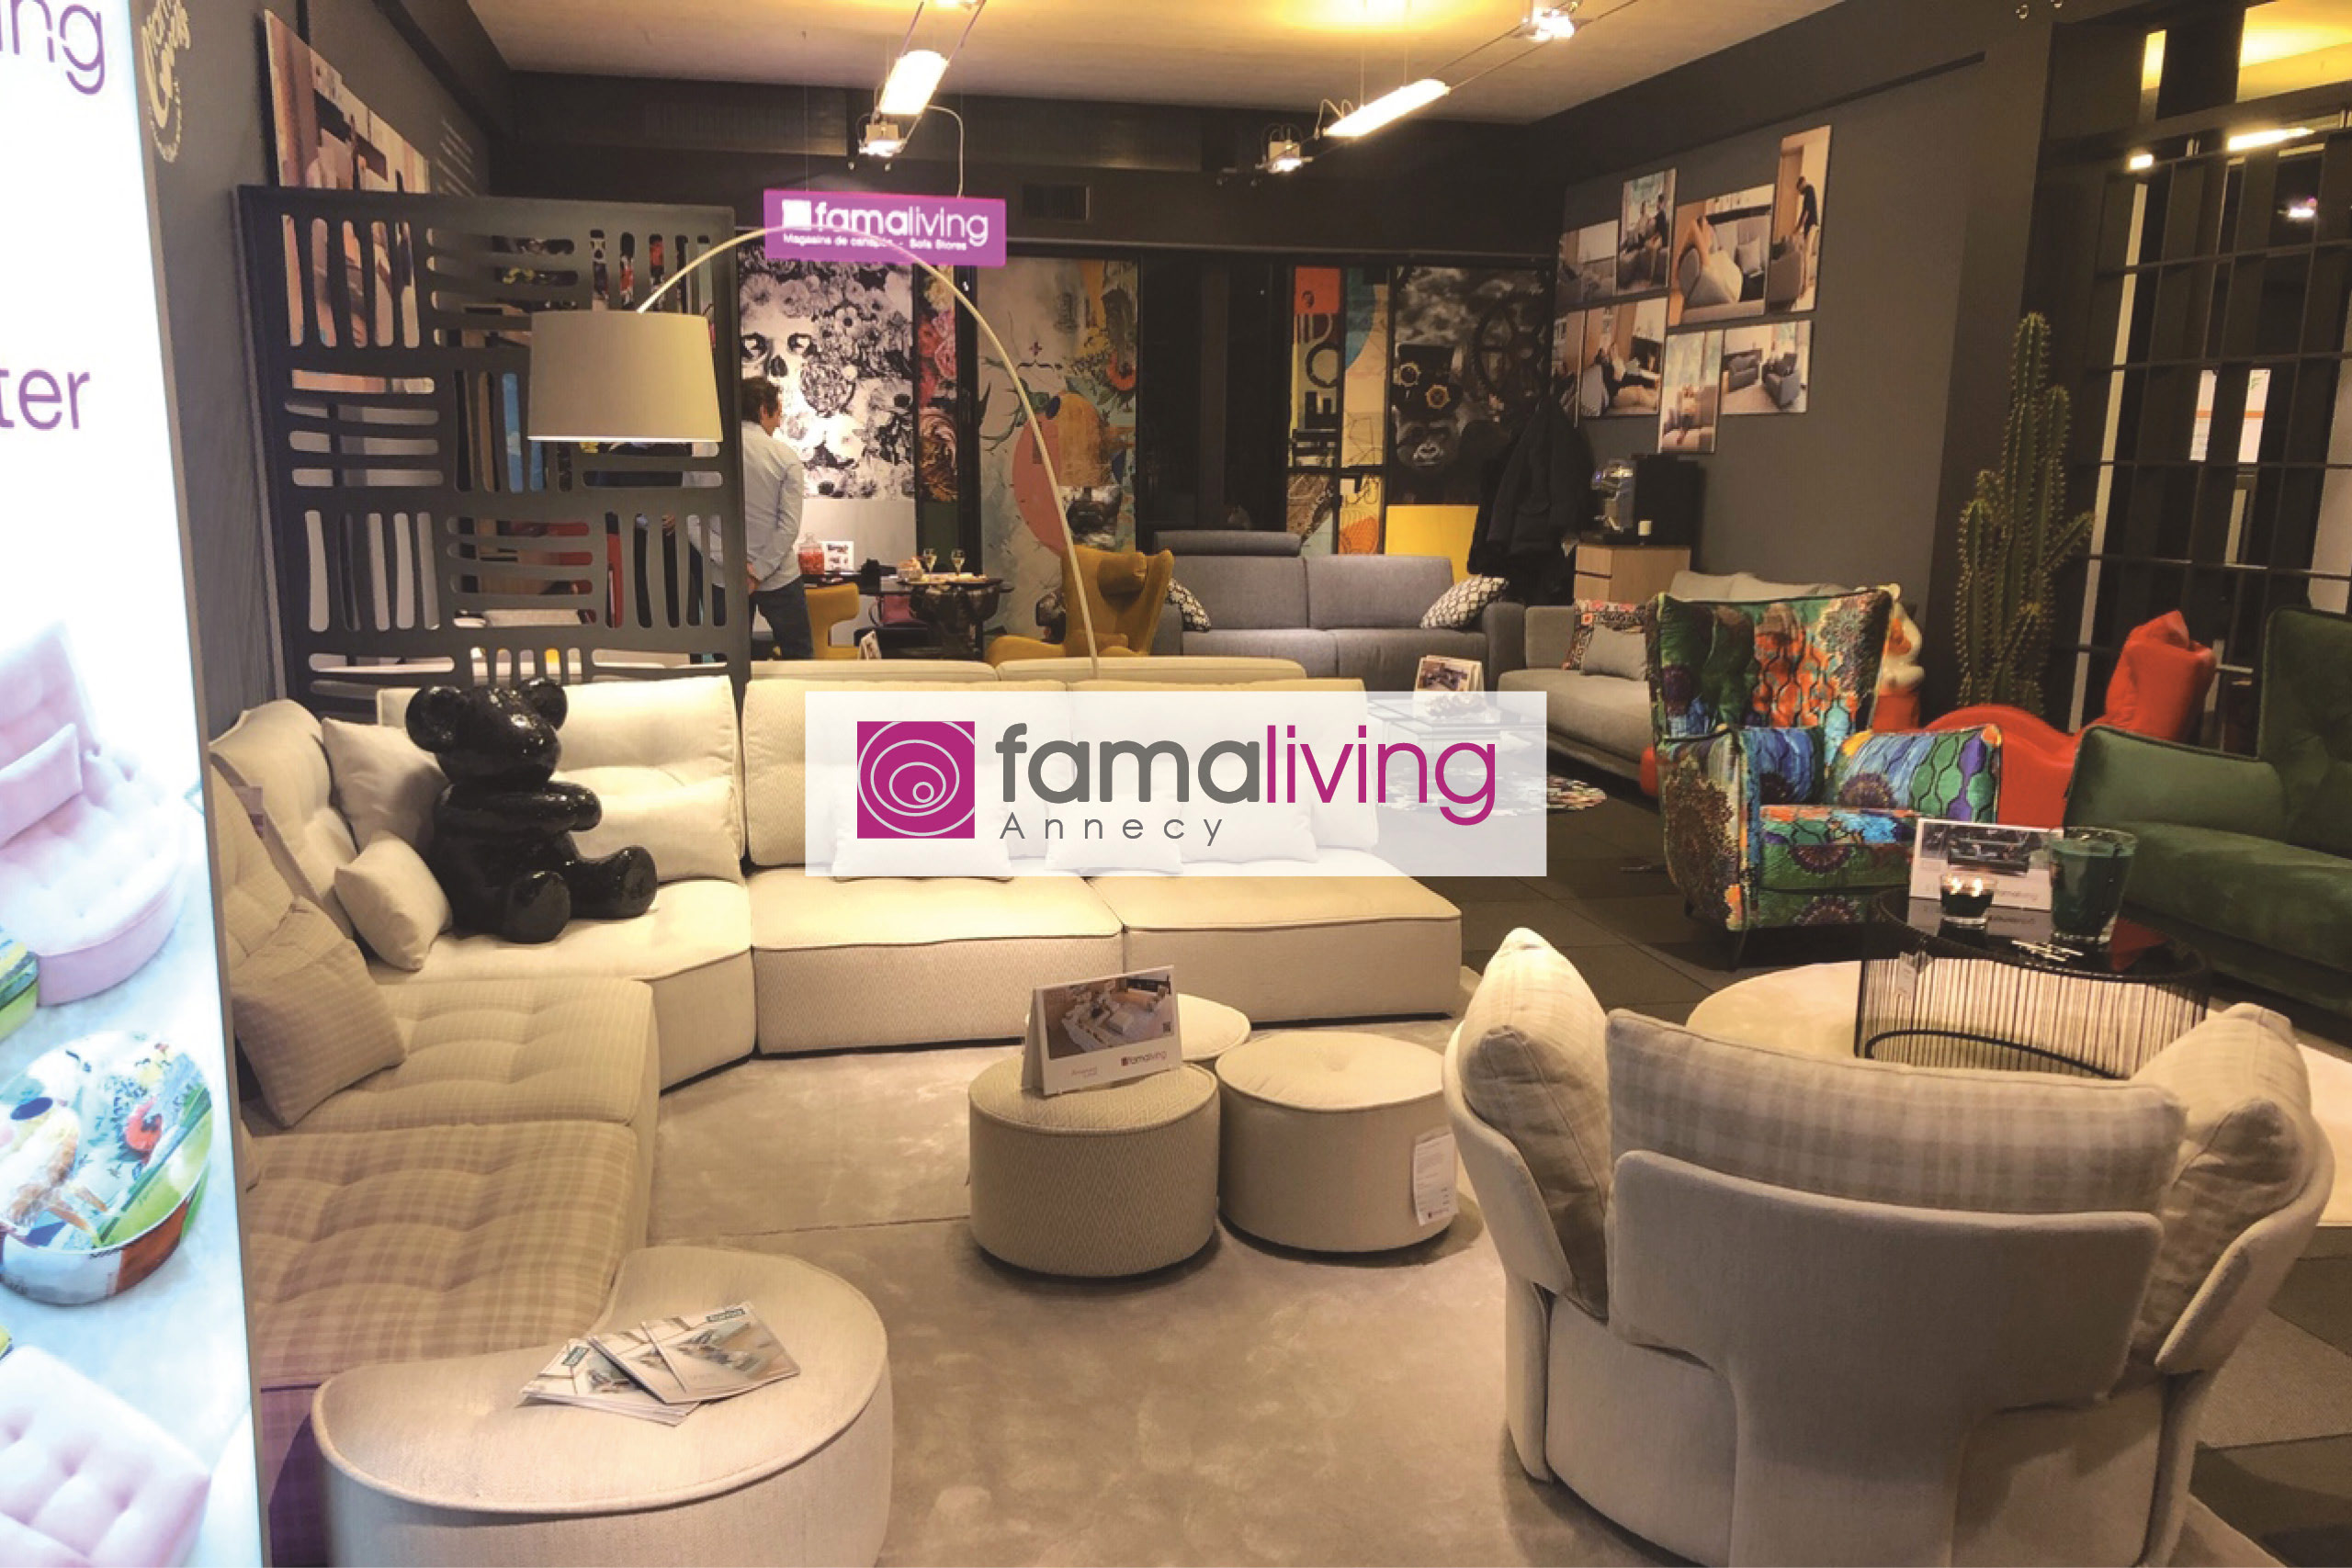 https://www.famaliving.com/annecy-en